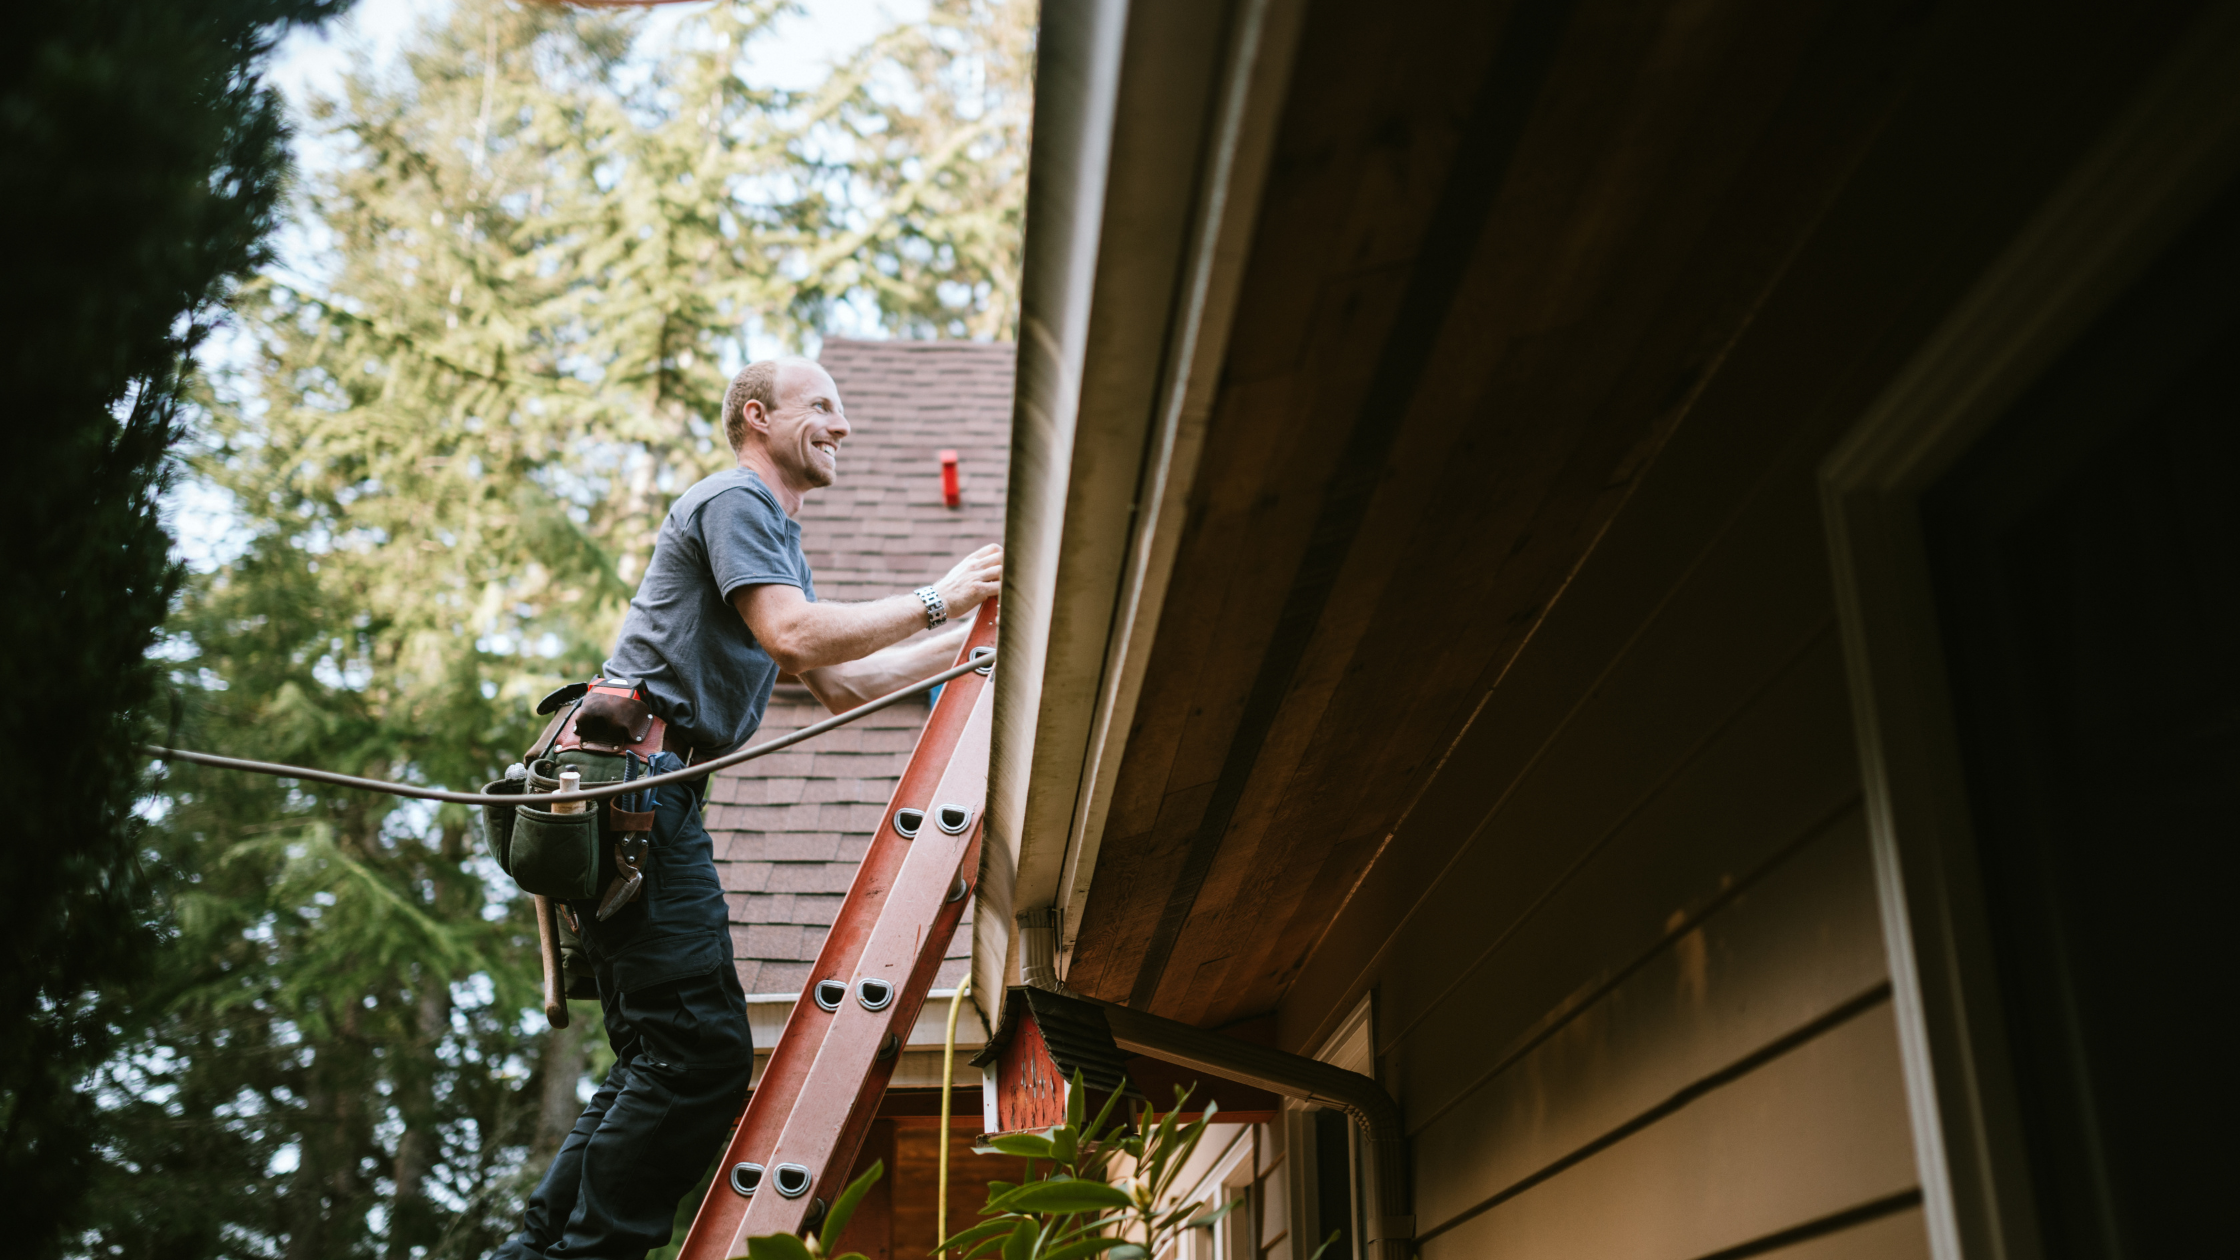 Should I Use My Insurance Company's Contractor?